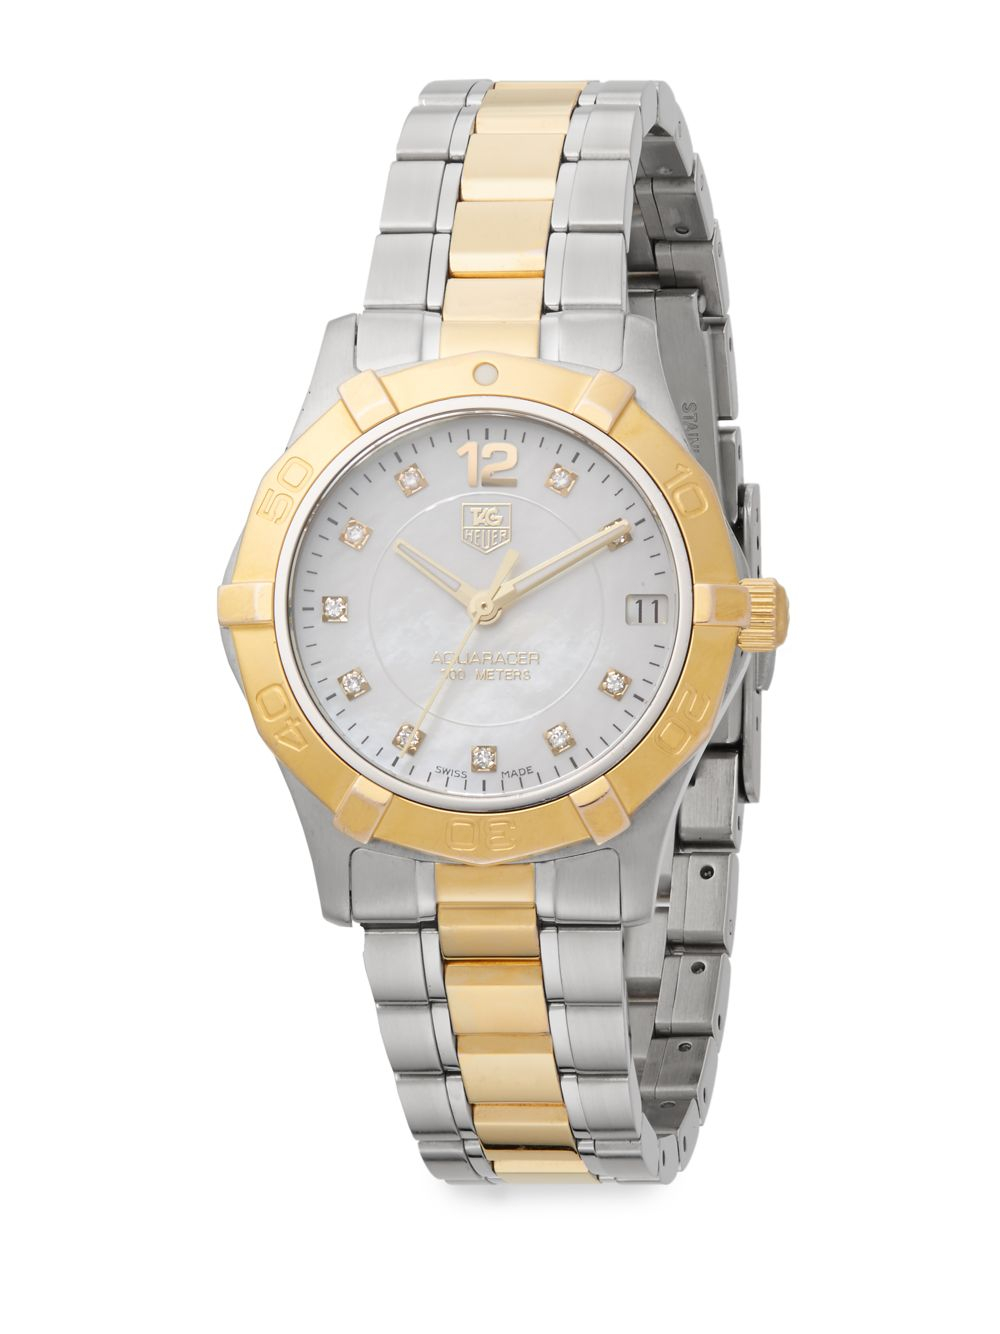 Second Hand Tag Watches >> Lyst - Tag Heuer Aquaracer Diamond Two-Tone Stainless Steel & 18K Yellow Gold-Plated Bracelet ...